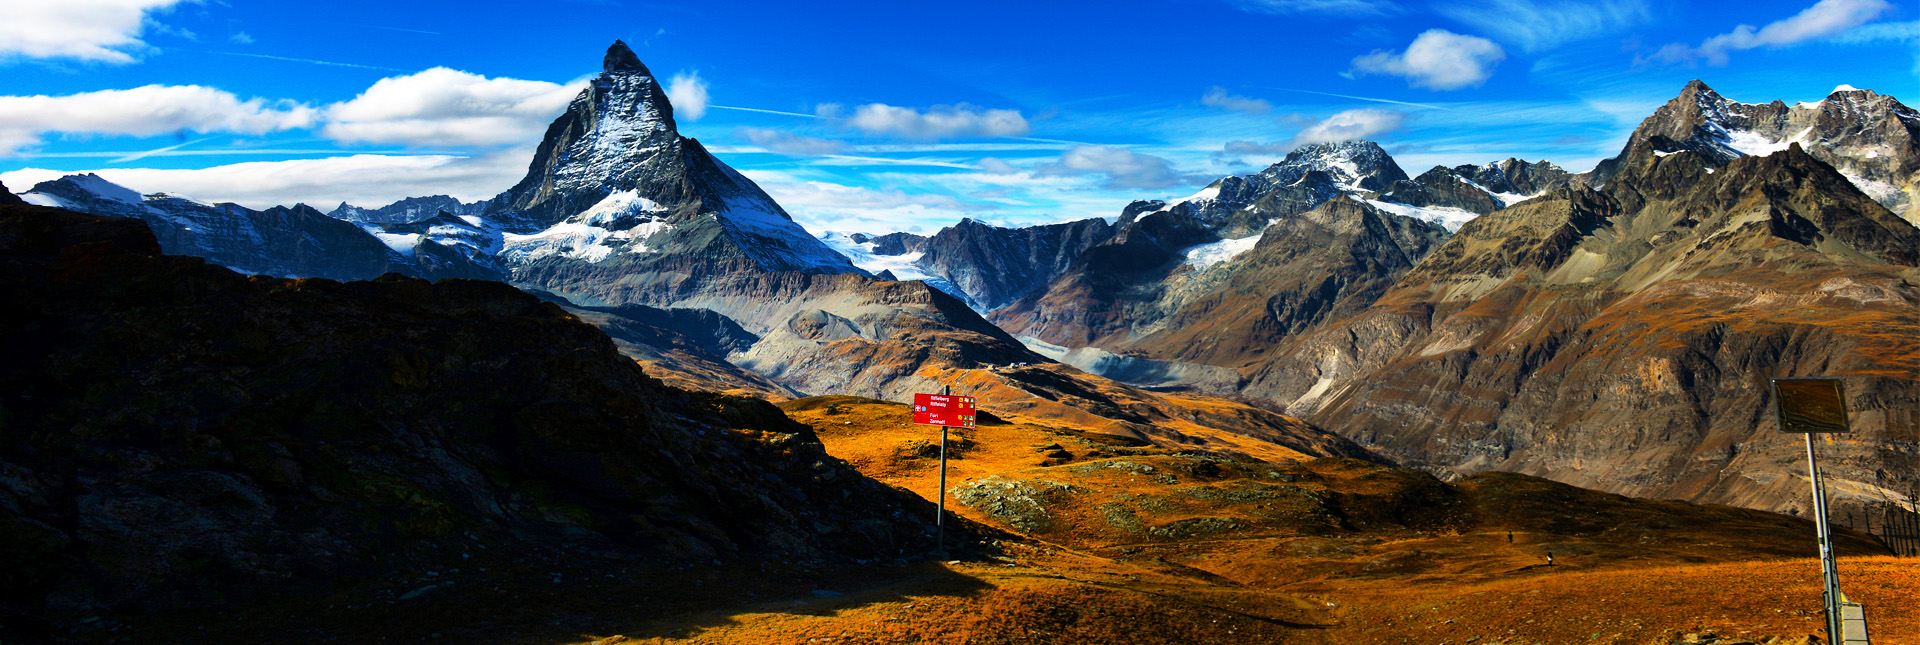 The view of the iconic Matterhorn